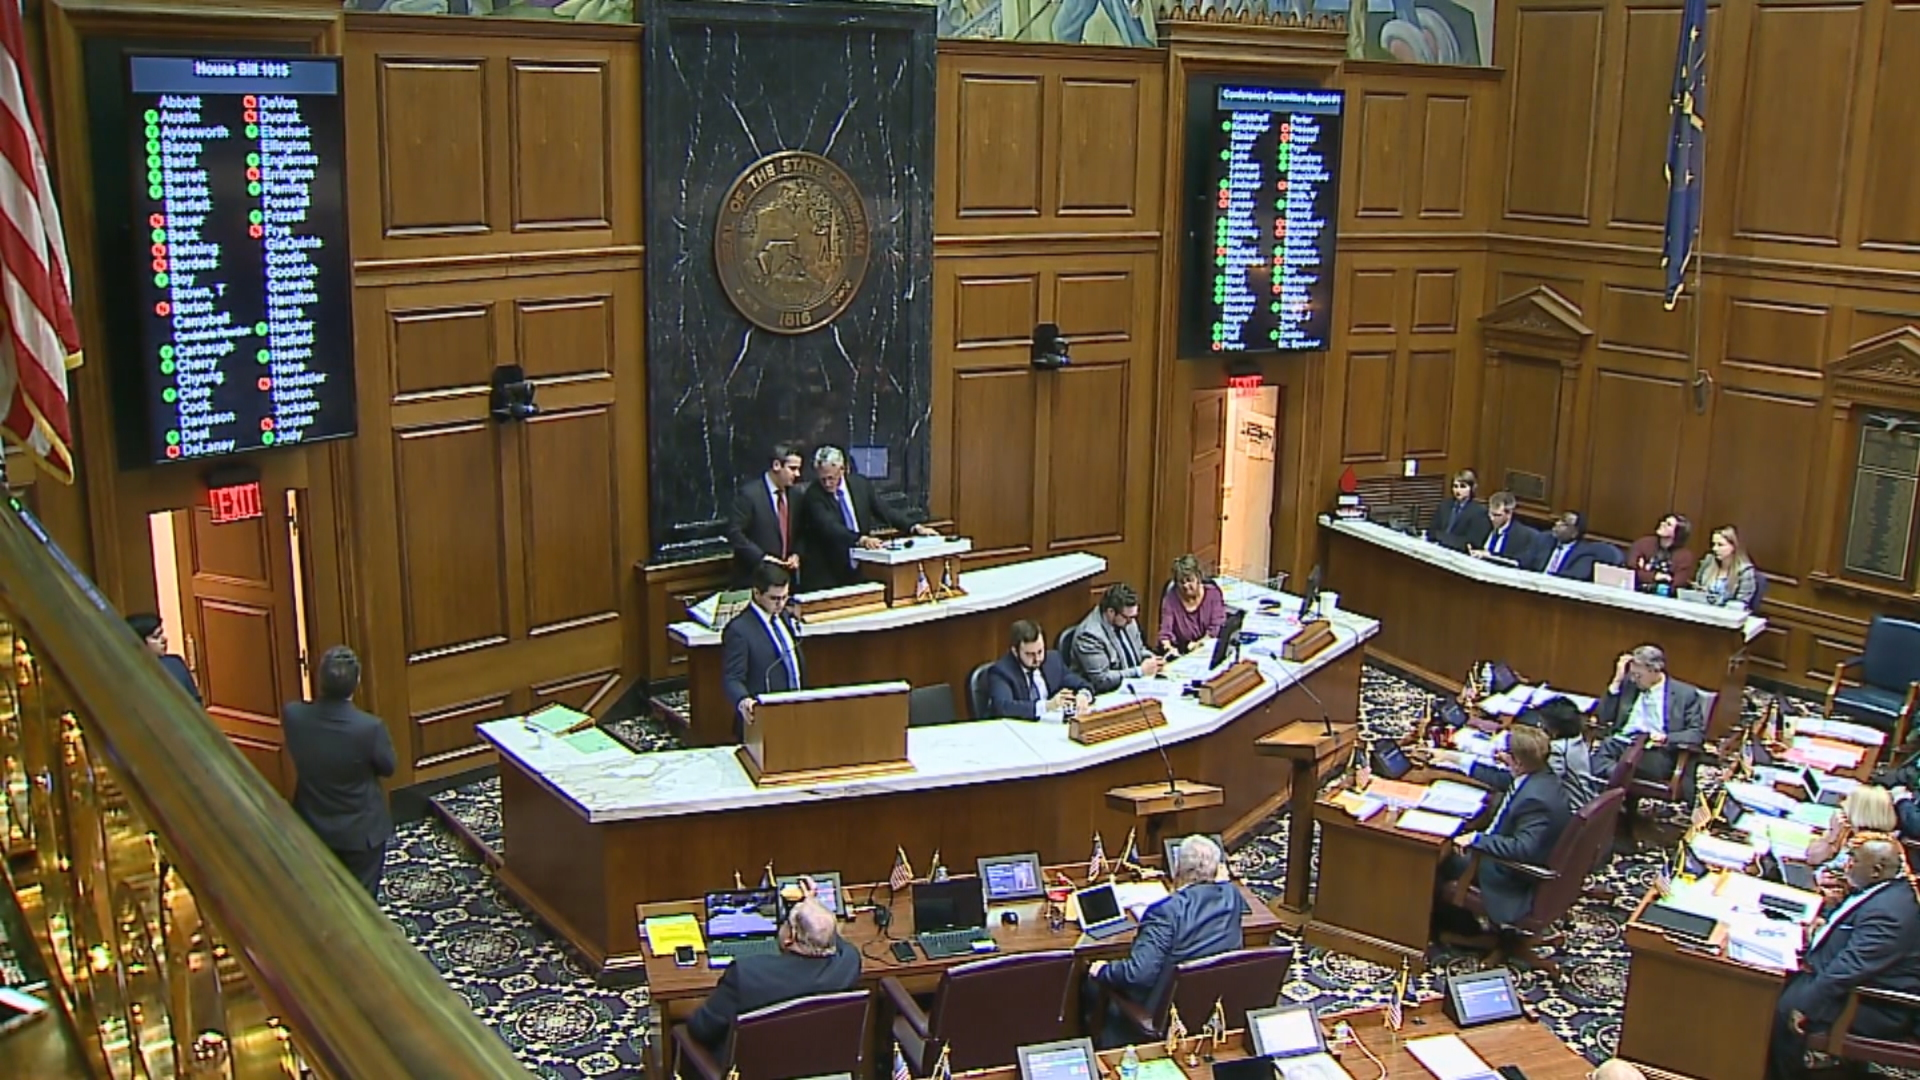 Indiana remains in session to consider budget bill